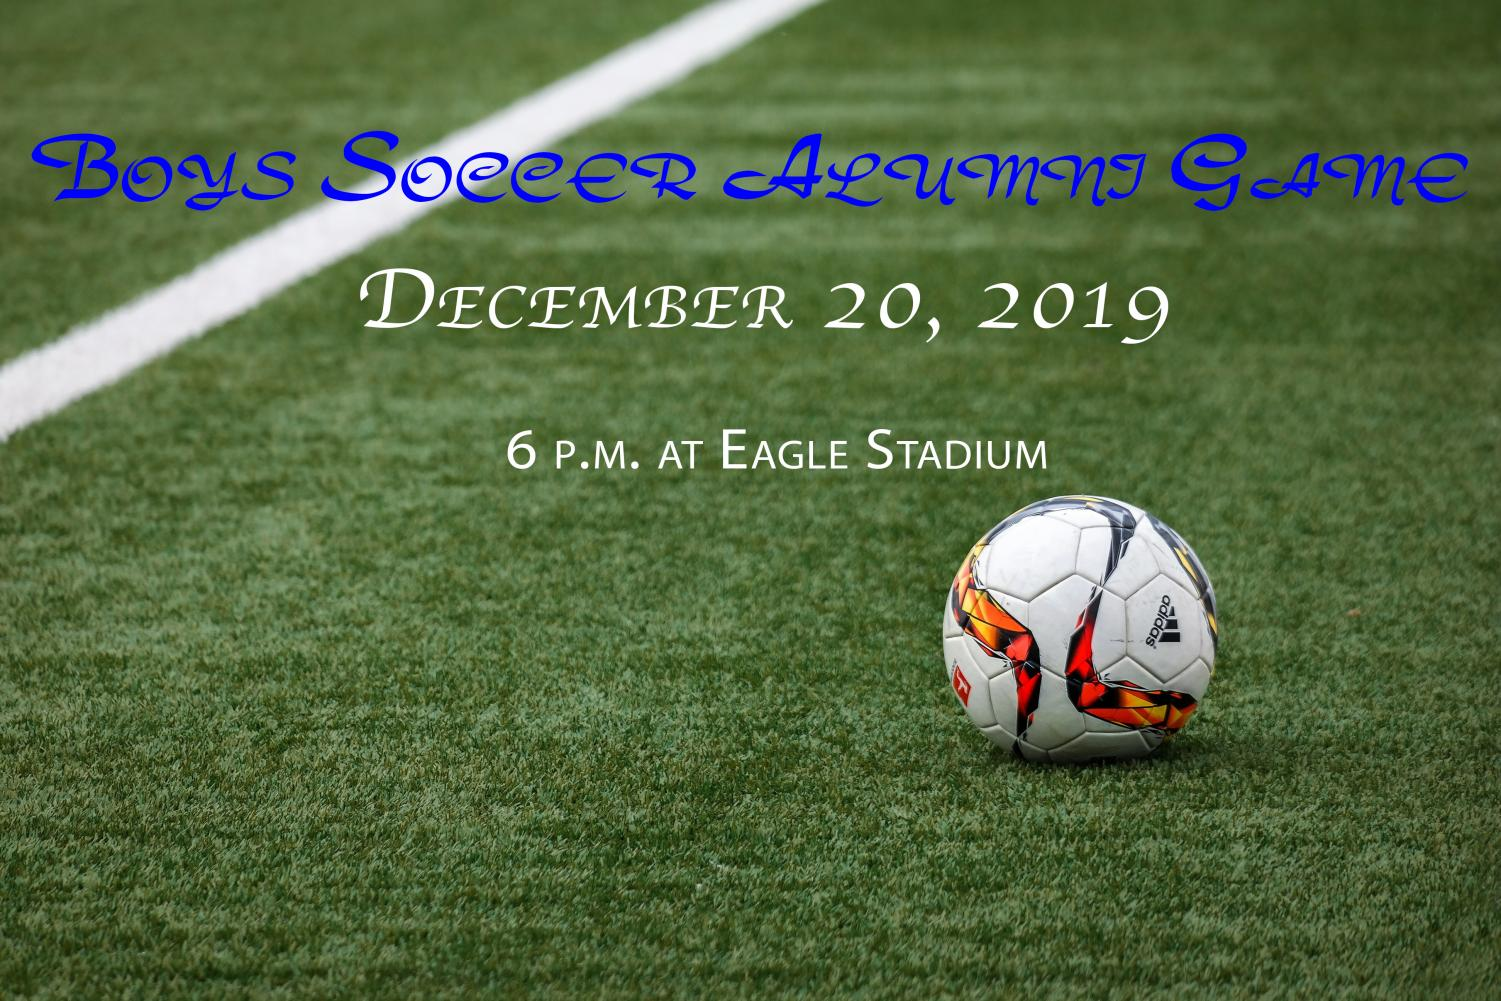 The varsity boys soccer team will host an alumni game on December 20. The event will take place at 6 p.m. at Eagle Stadium.